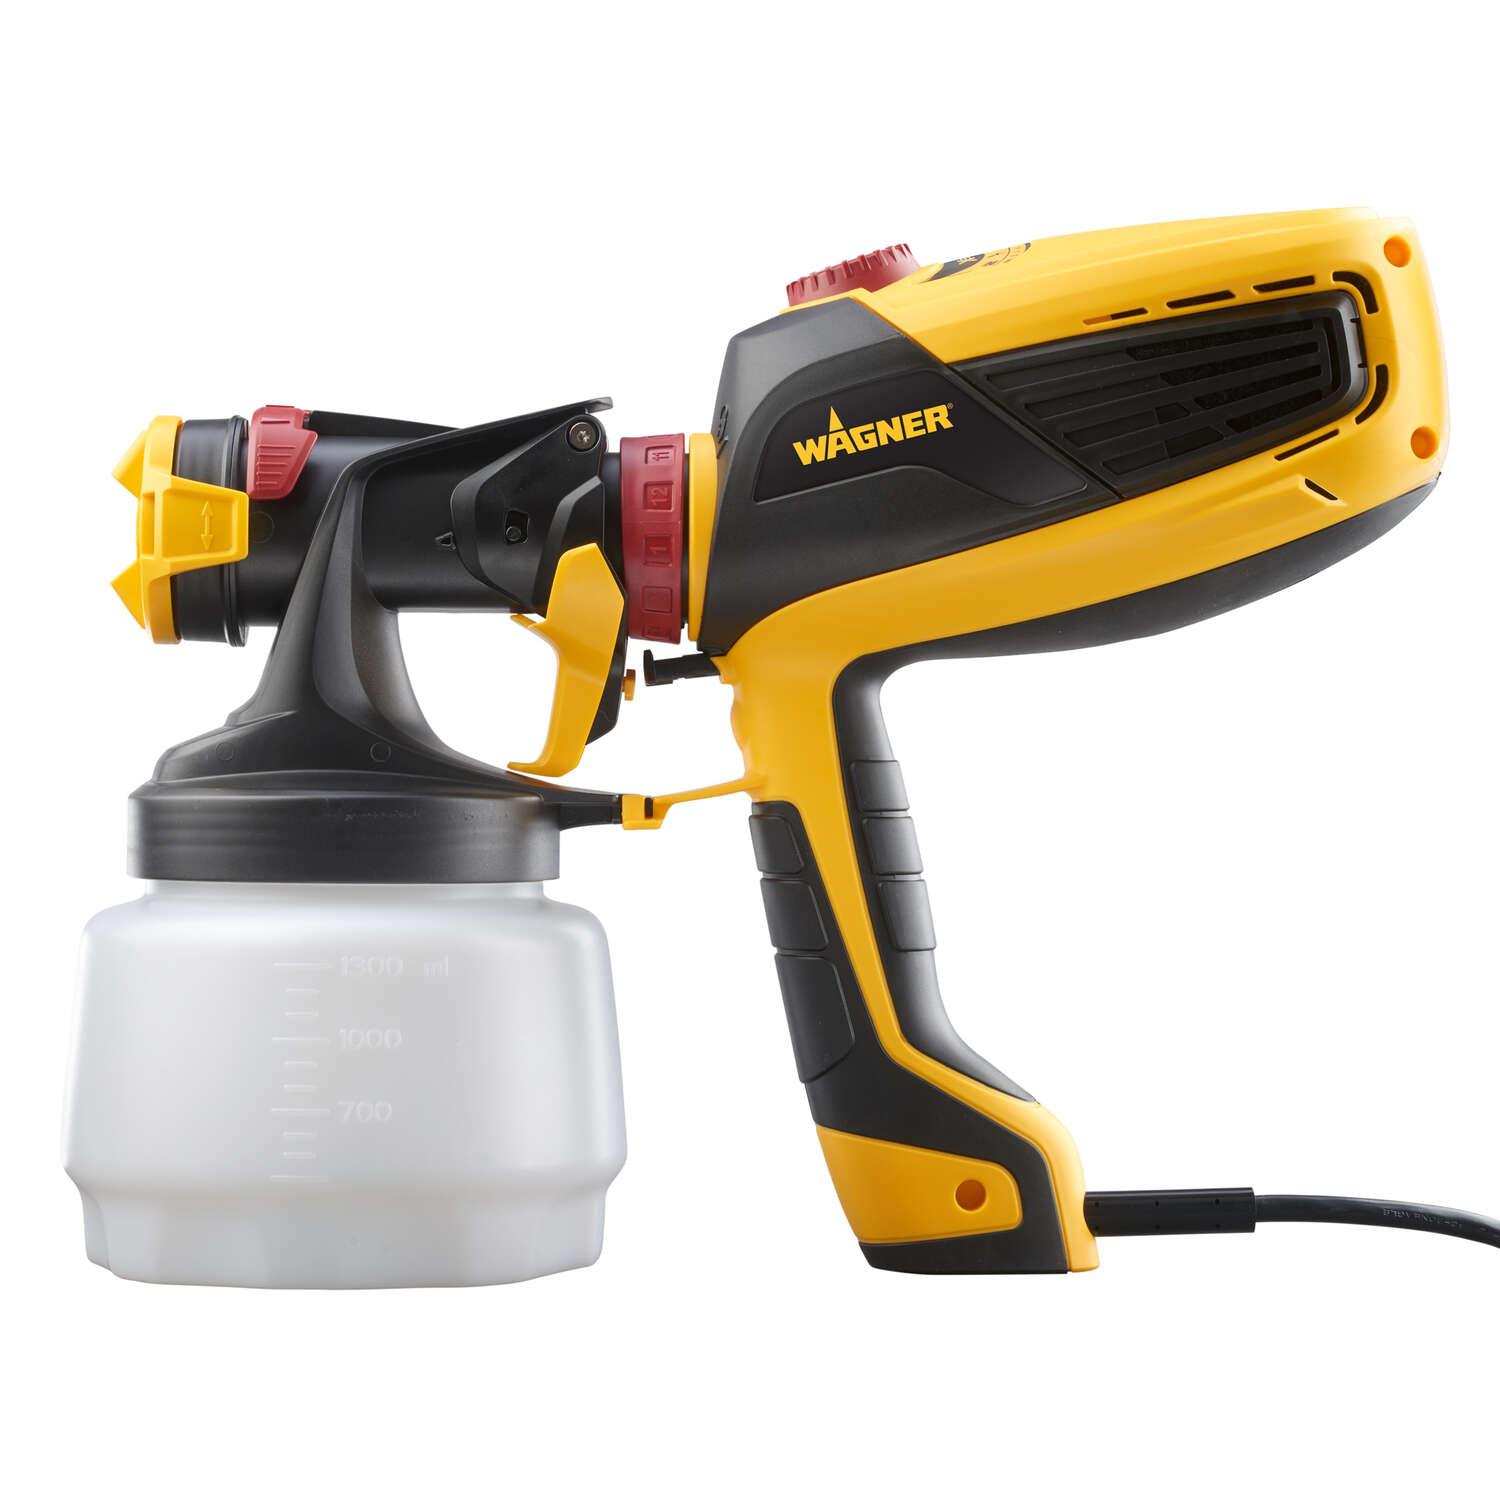 Wagner  Flexio 590  5 psi Plastic  Handheld  Paint Sprayer